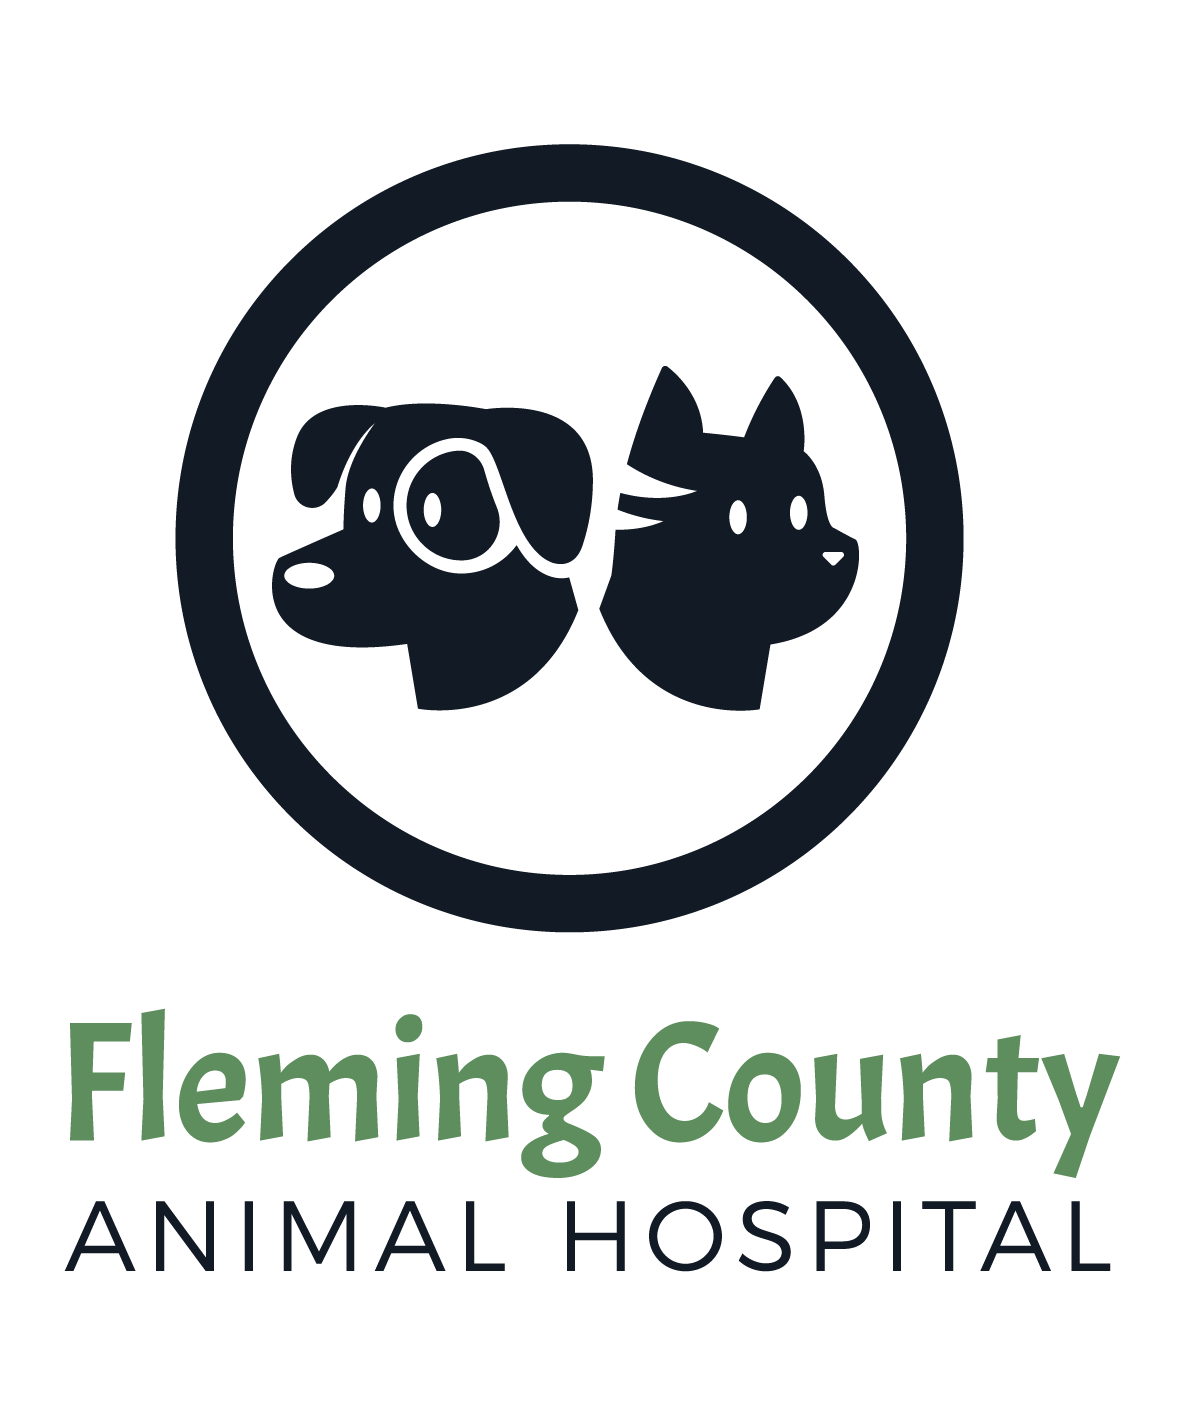 Fleming County Animal Hospital